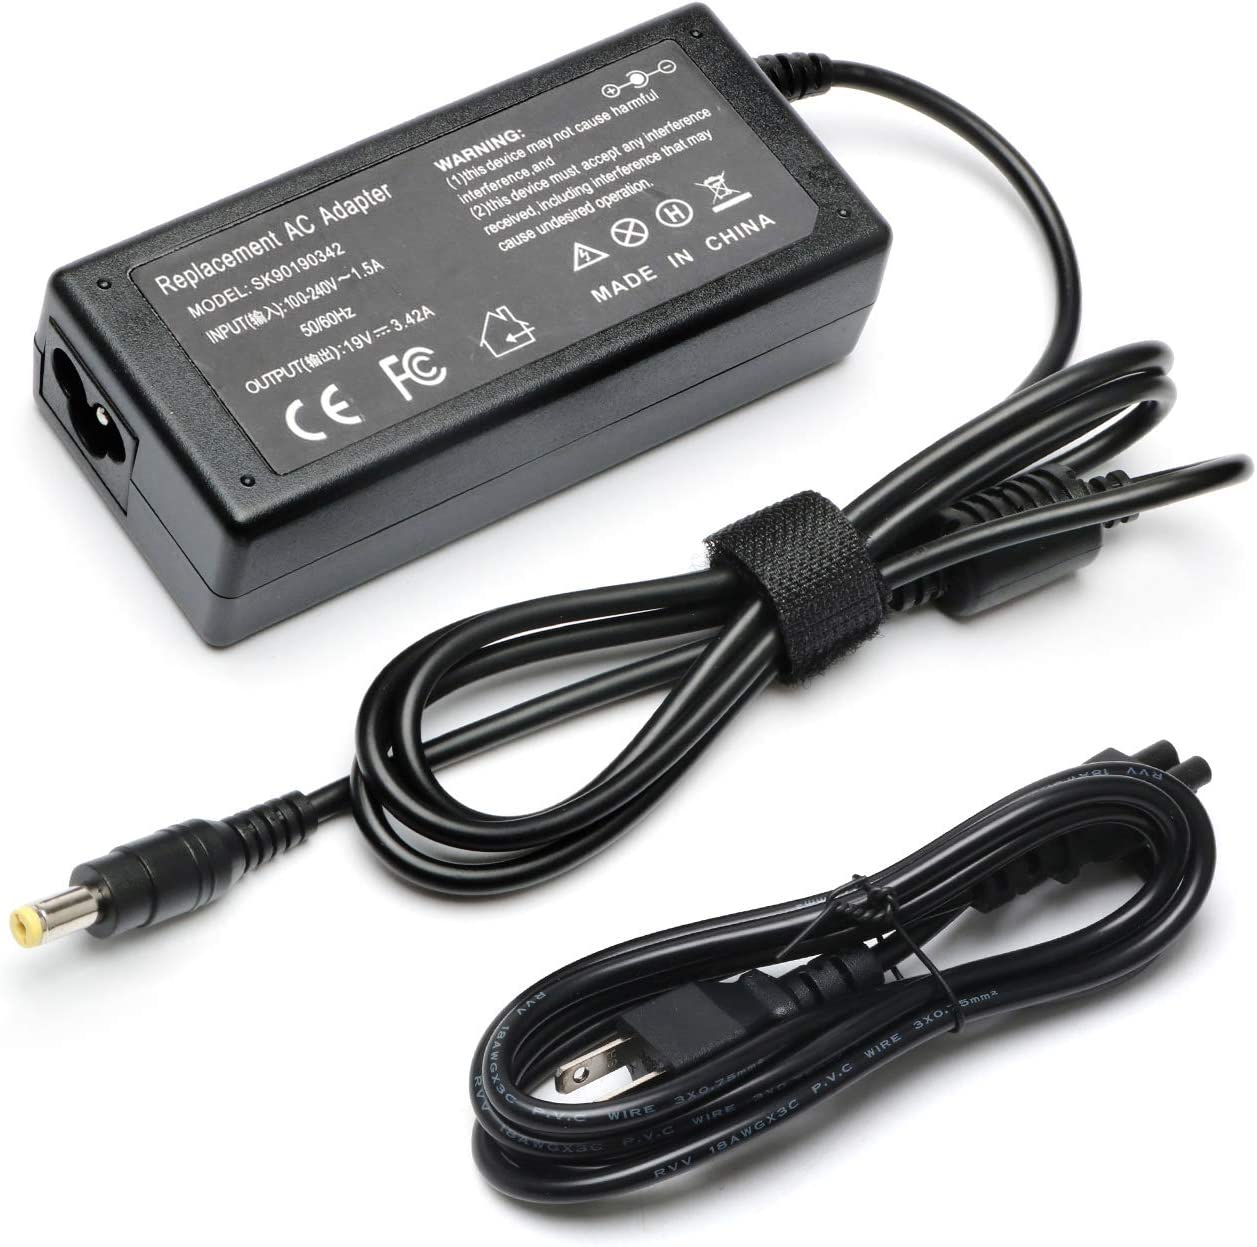 65W AC Adapter Laptop Charger for Acer Aspire 5532 5349 5250 5253 5733 5534 5336 5552 5560 560 SB416 AS7750 6423 E15 V5 V3 R14 R3 R7 M5 S3 E1 ES1 G276HL GN246L Series Power Supply Cord-19V 3.42A